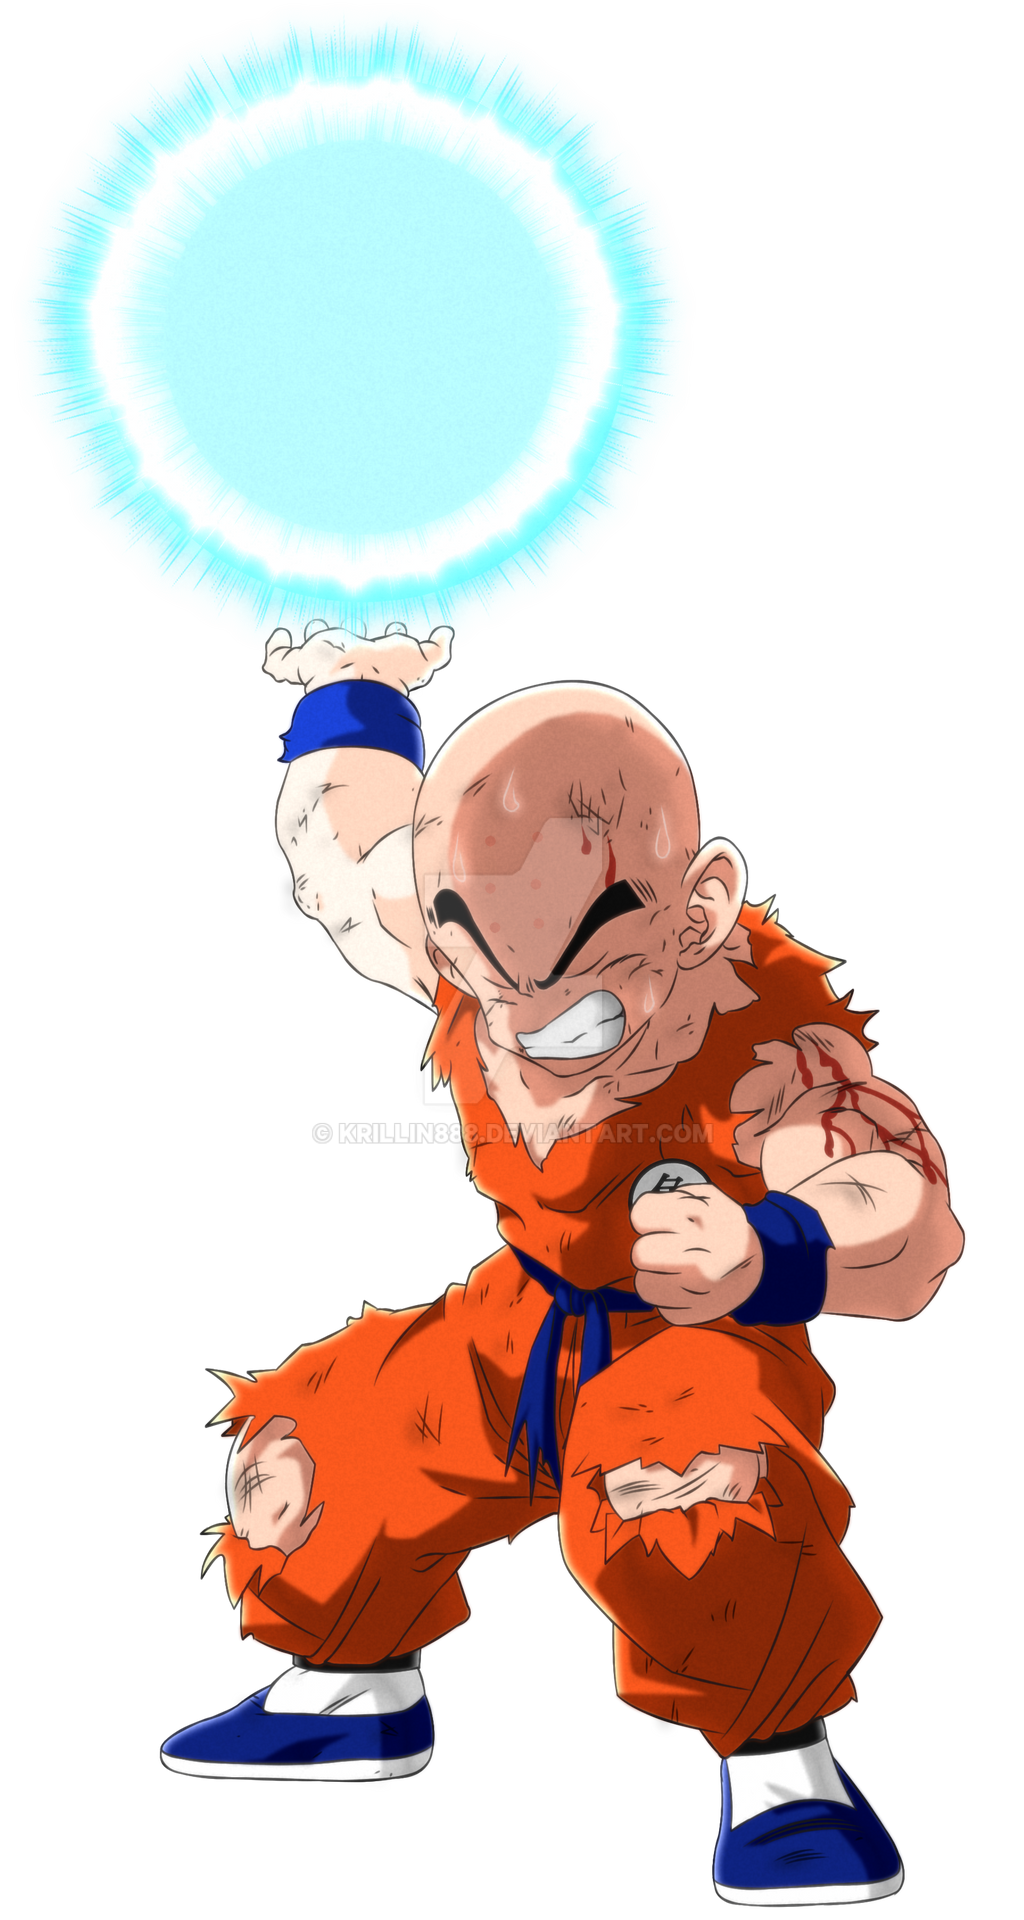 Krillin Dragonball Z Vegeta Sagav1 By Krillin888 On